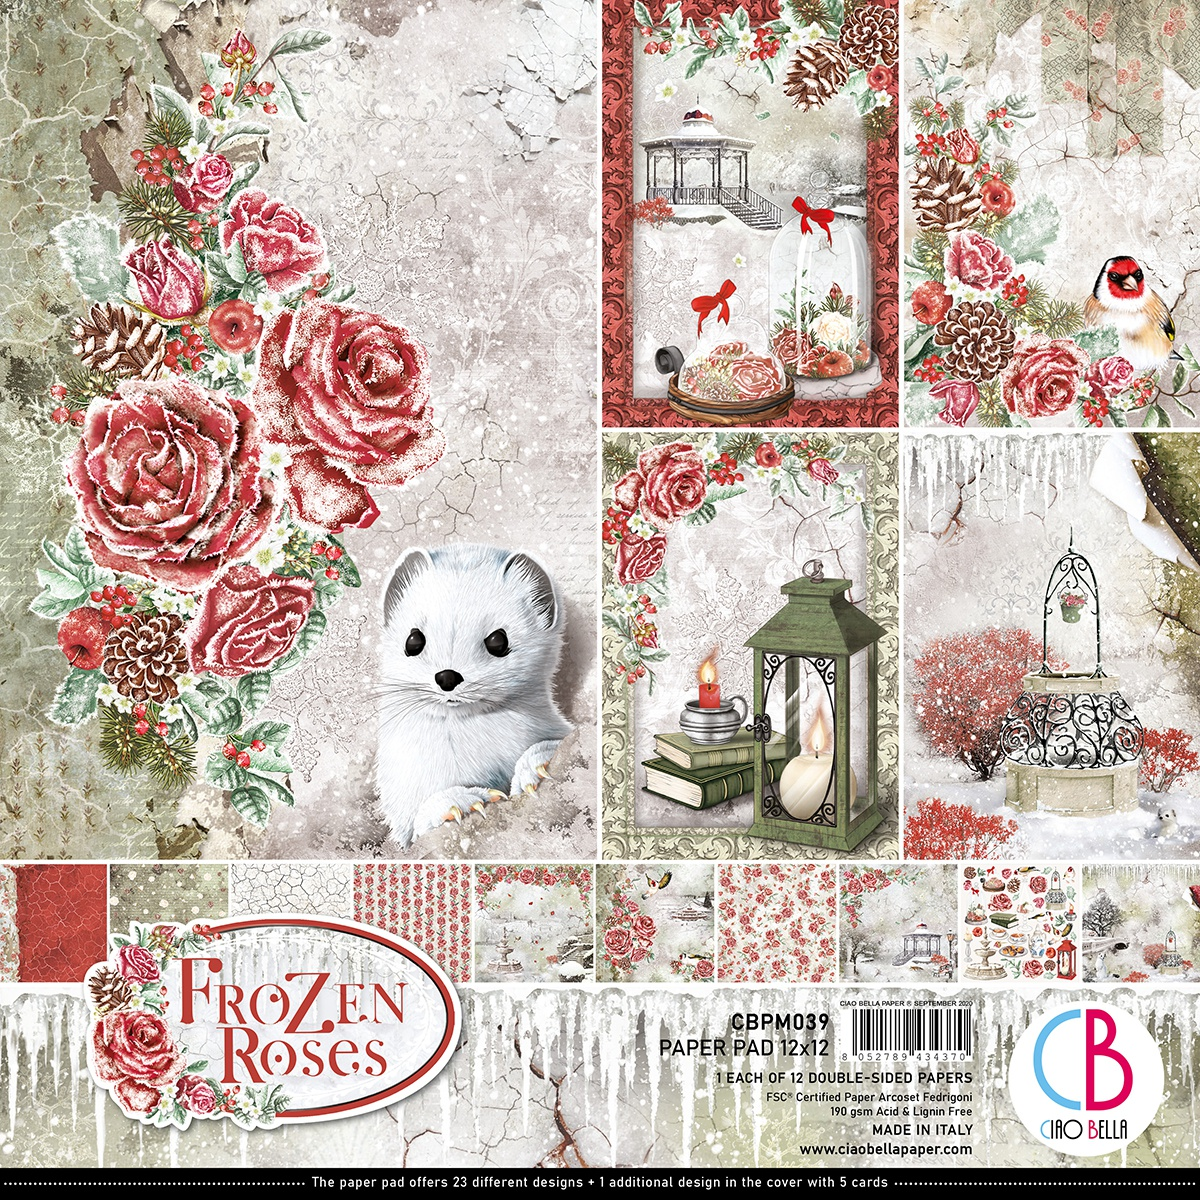 Ciao Bella Double-Sided Paper Pack 90lb 12X12 12/Pkg-Frozen Roses, 12 Designs/1 Each